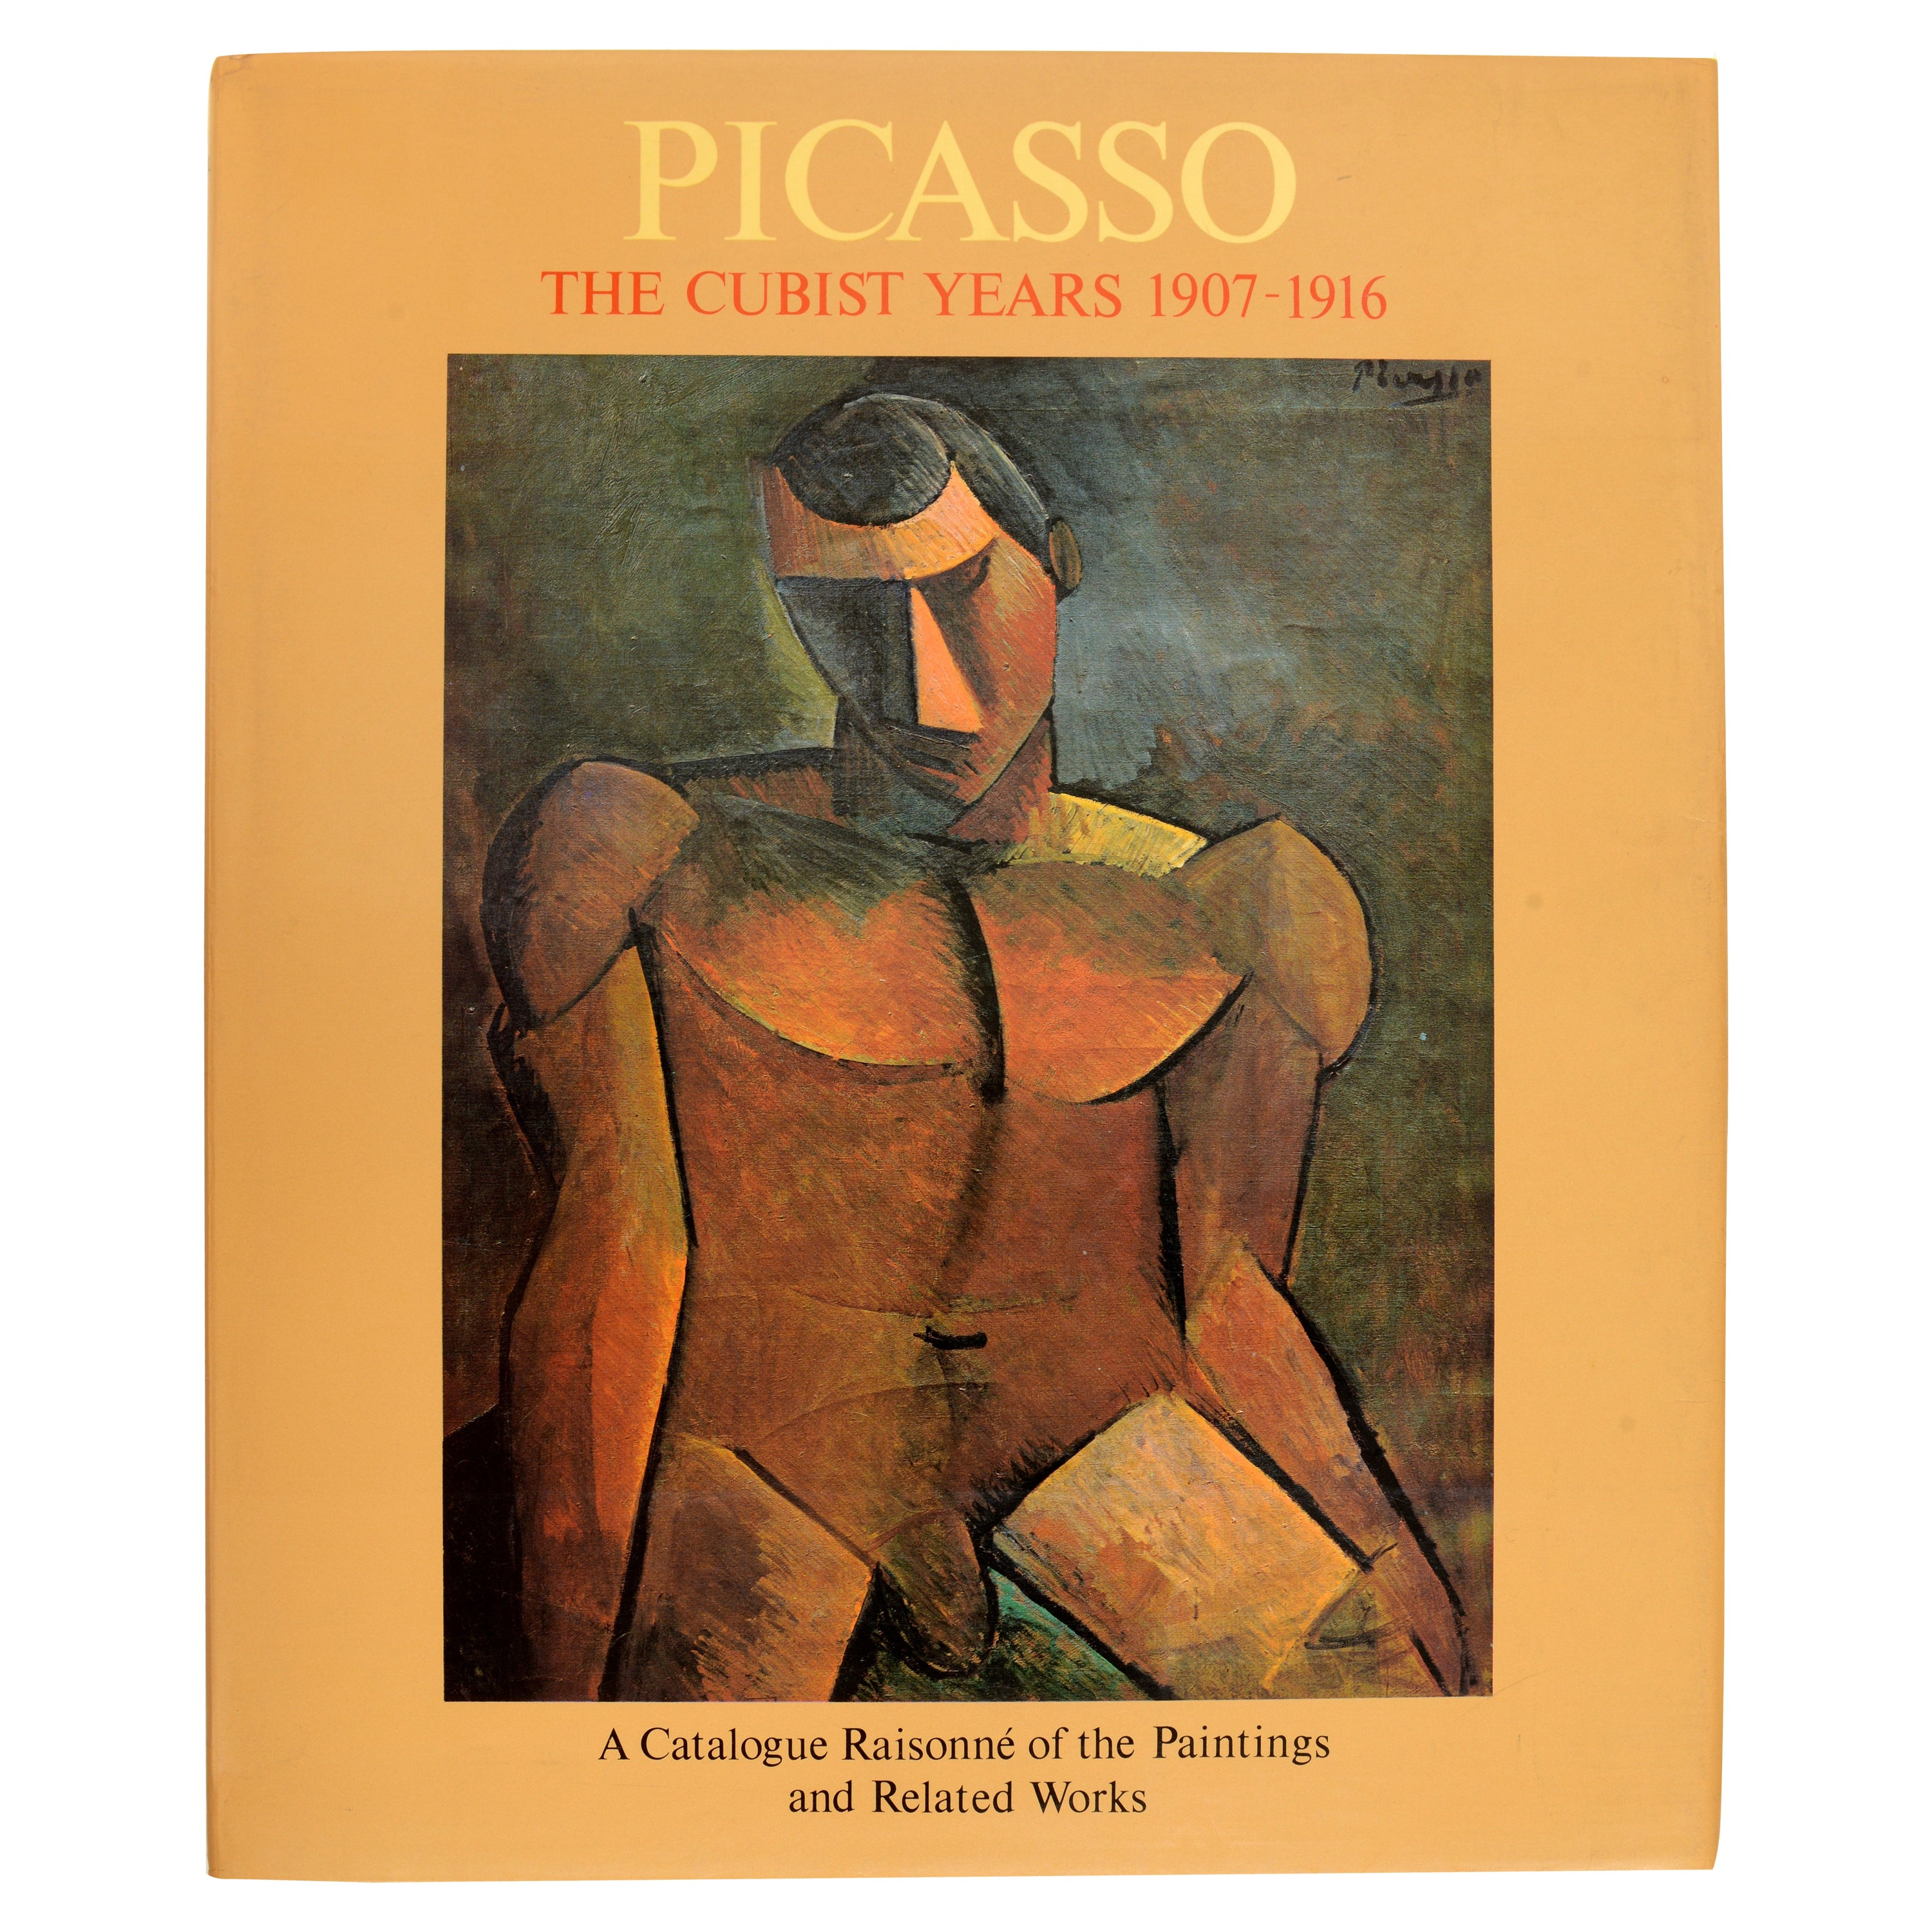 Picasso, The Cubist Years, 1907-1916 Catalogue Raisonne Paintings & Related Work